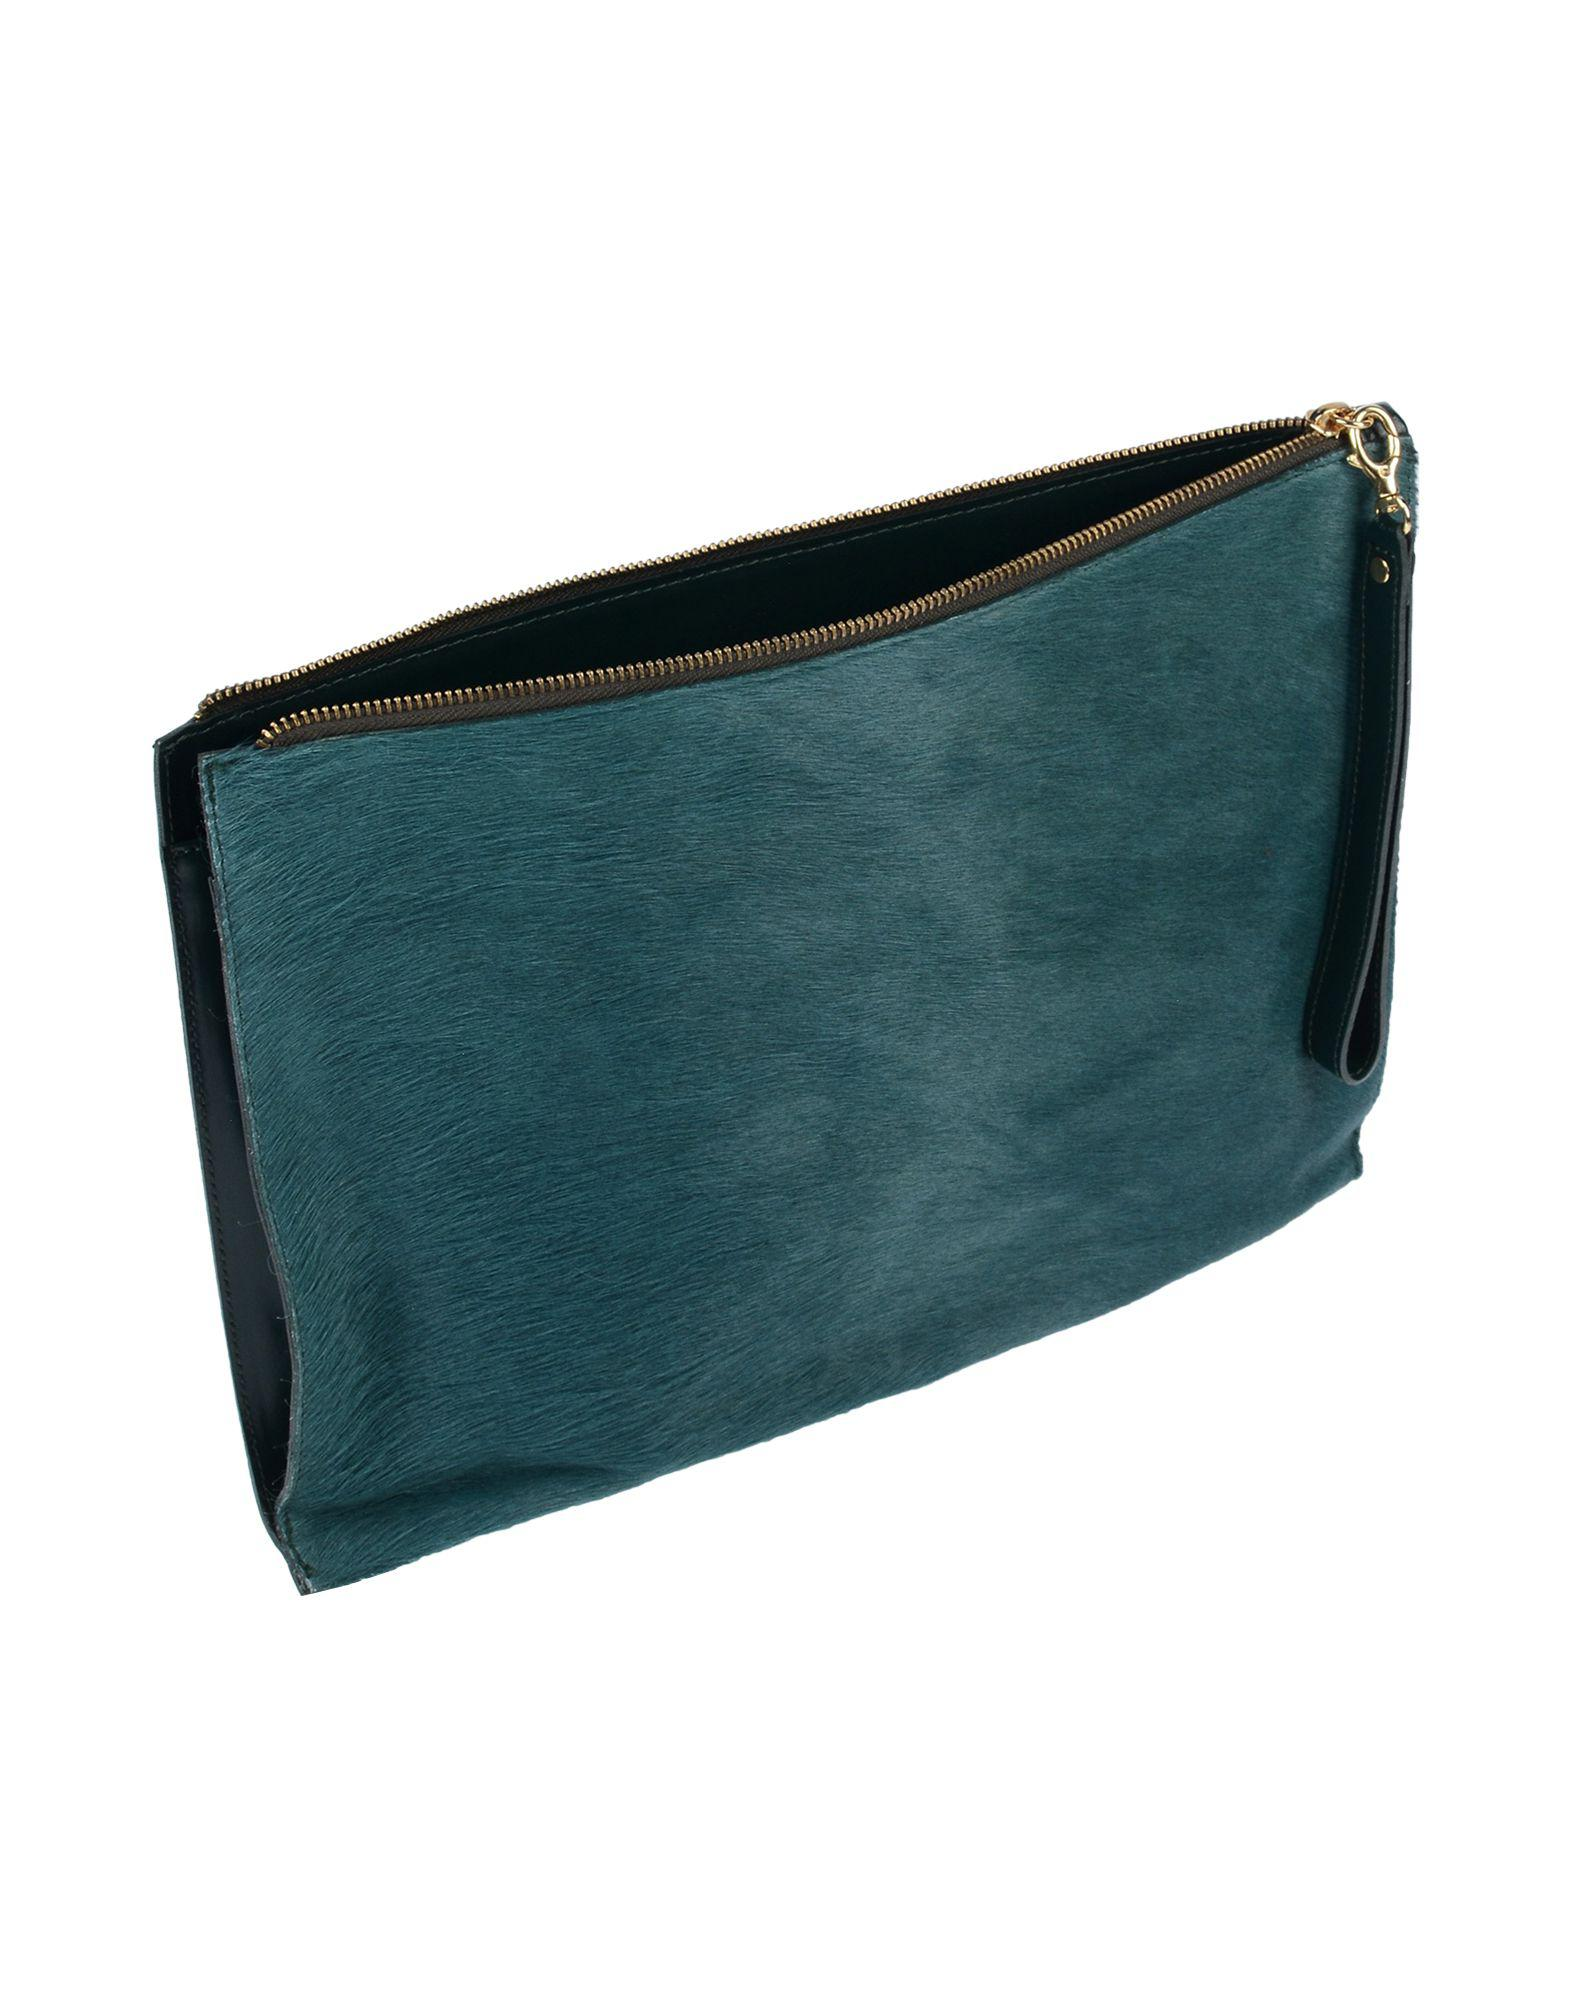 Handbag In Suoli Green Suoli Lyst Handbag Green Lyst In POfvq